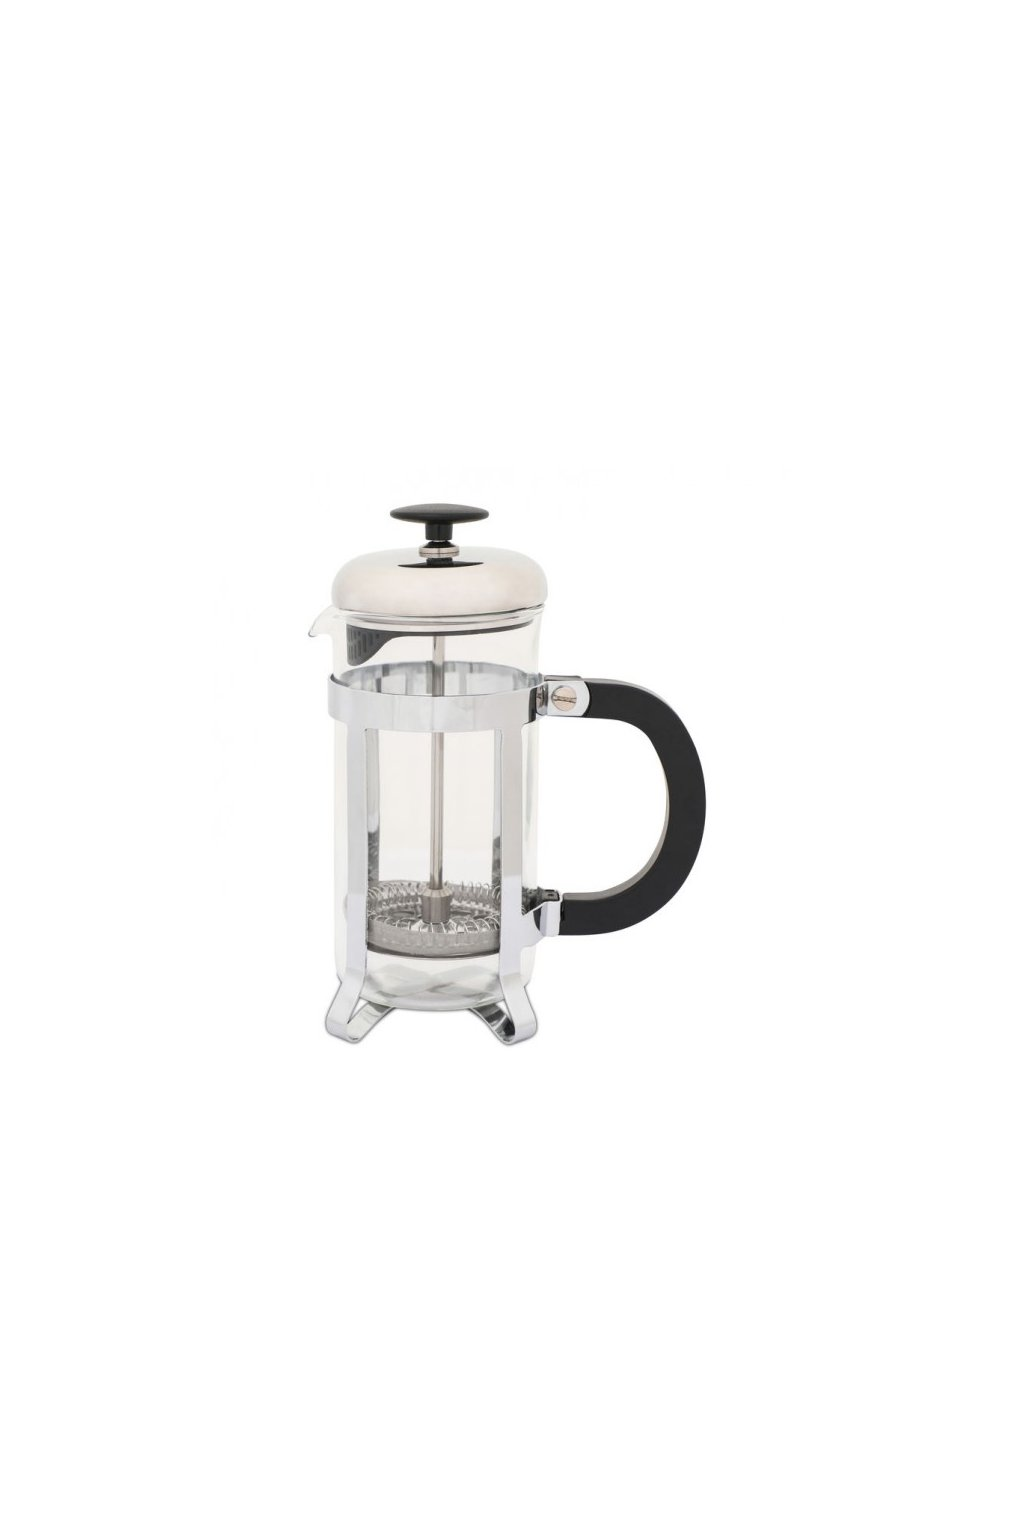 3894 french press 8 cup konvicka na kavu caj